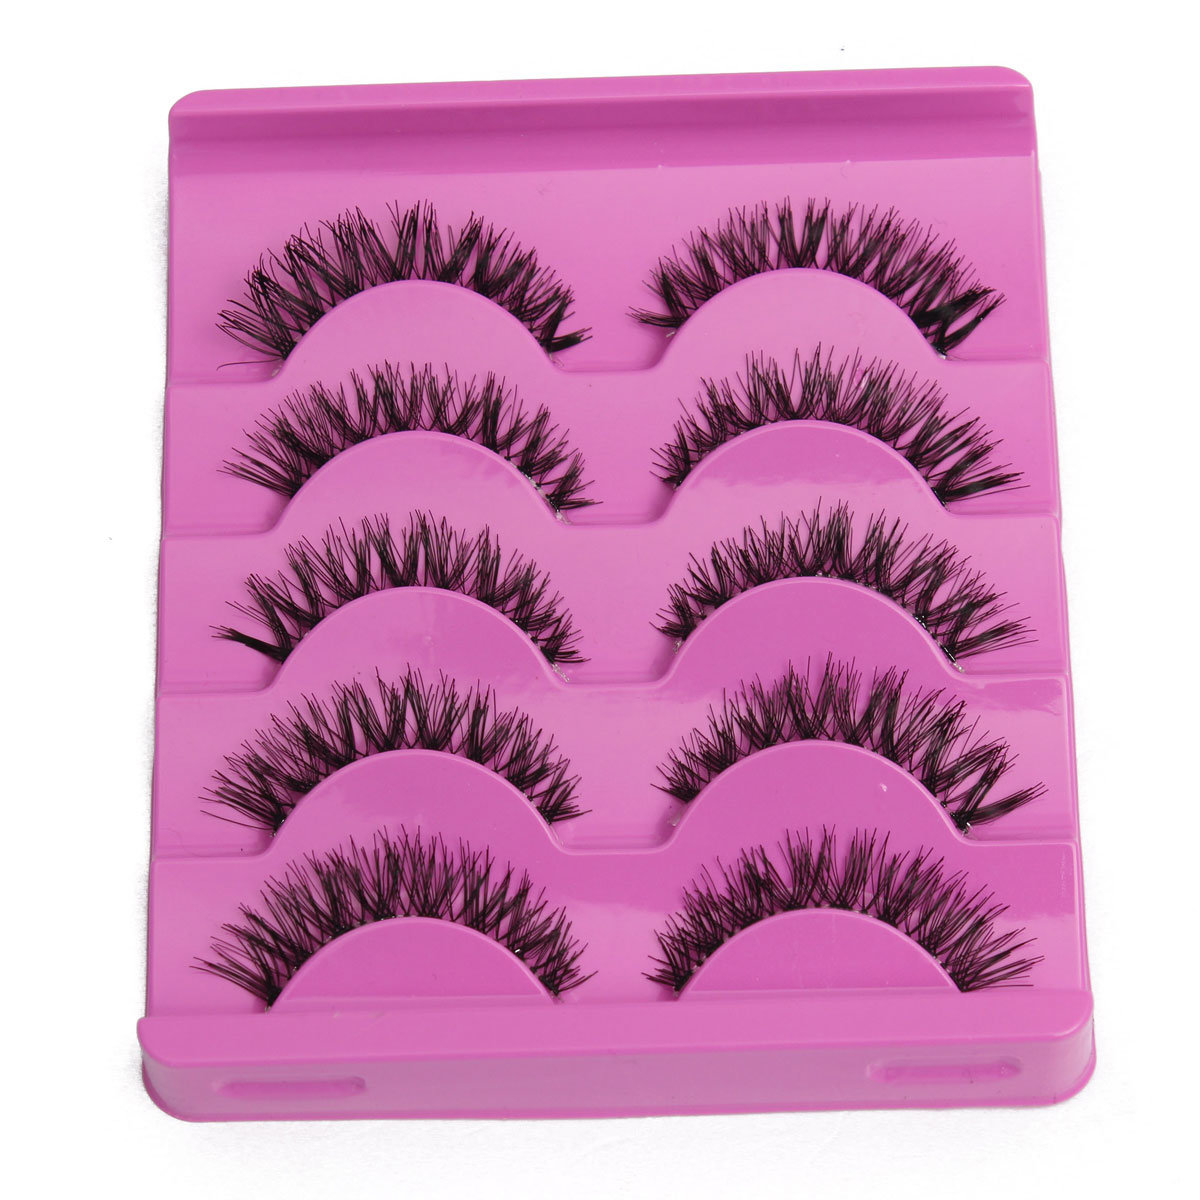 5 Pairs False Eyelashes Eyelash Soft Long Handmade Makeup Eye Lash